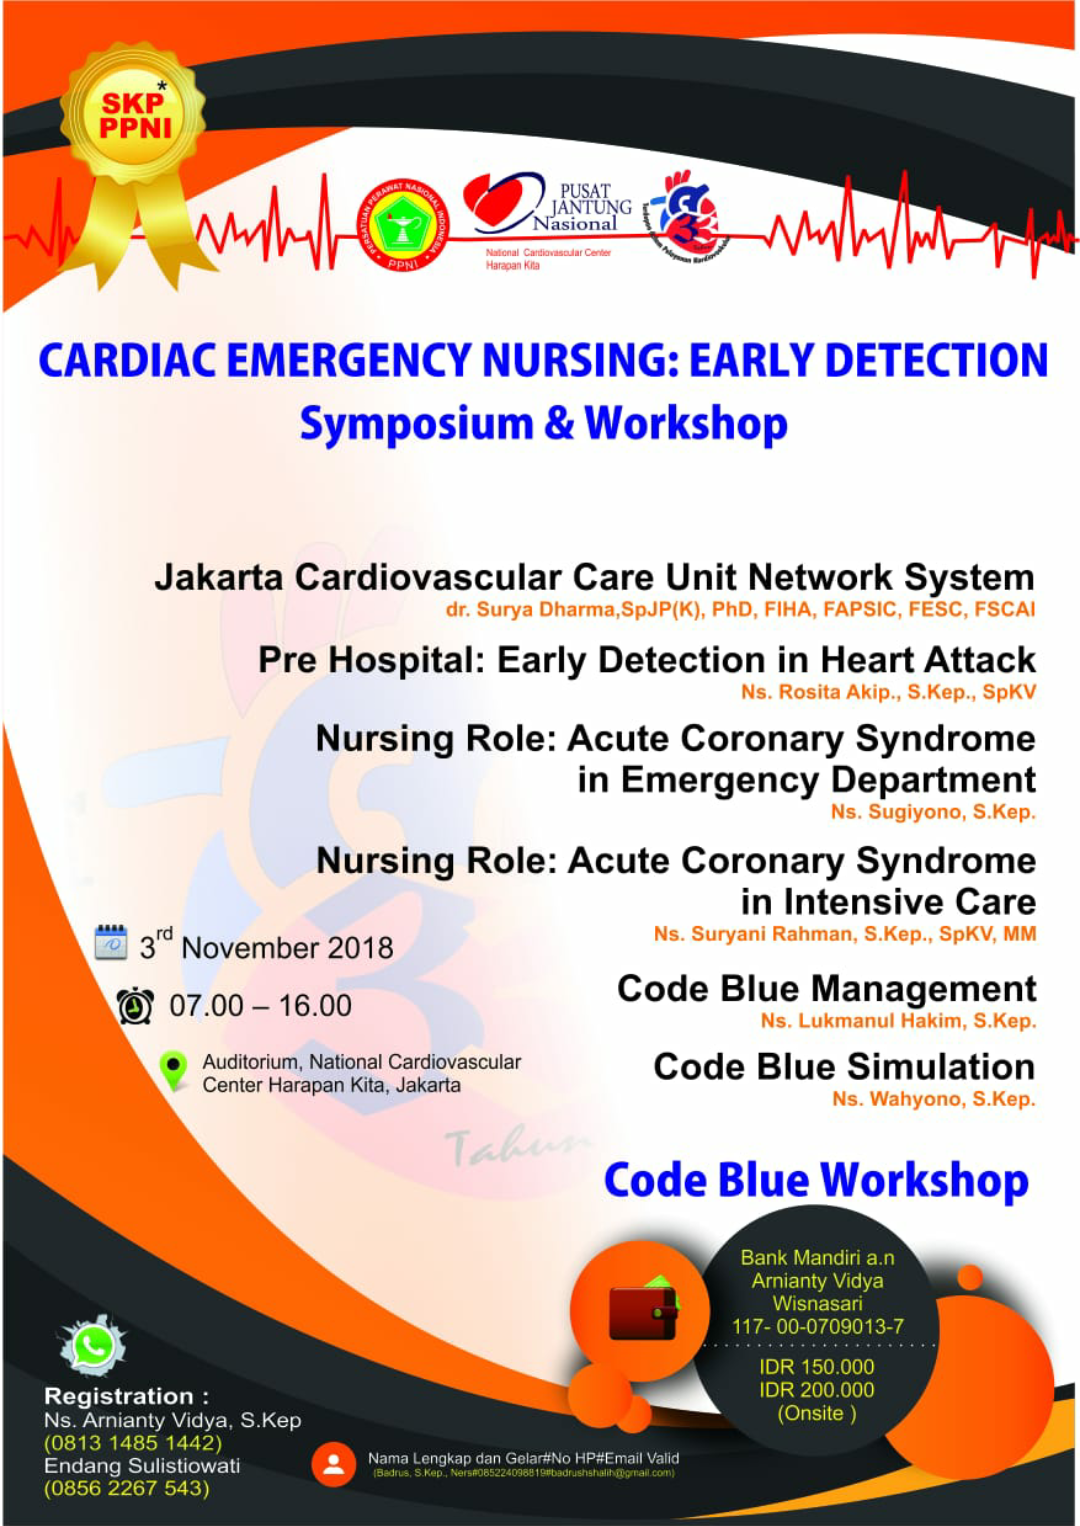 Cardiac Emergency Nursing: Early Detection